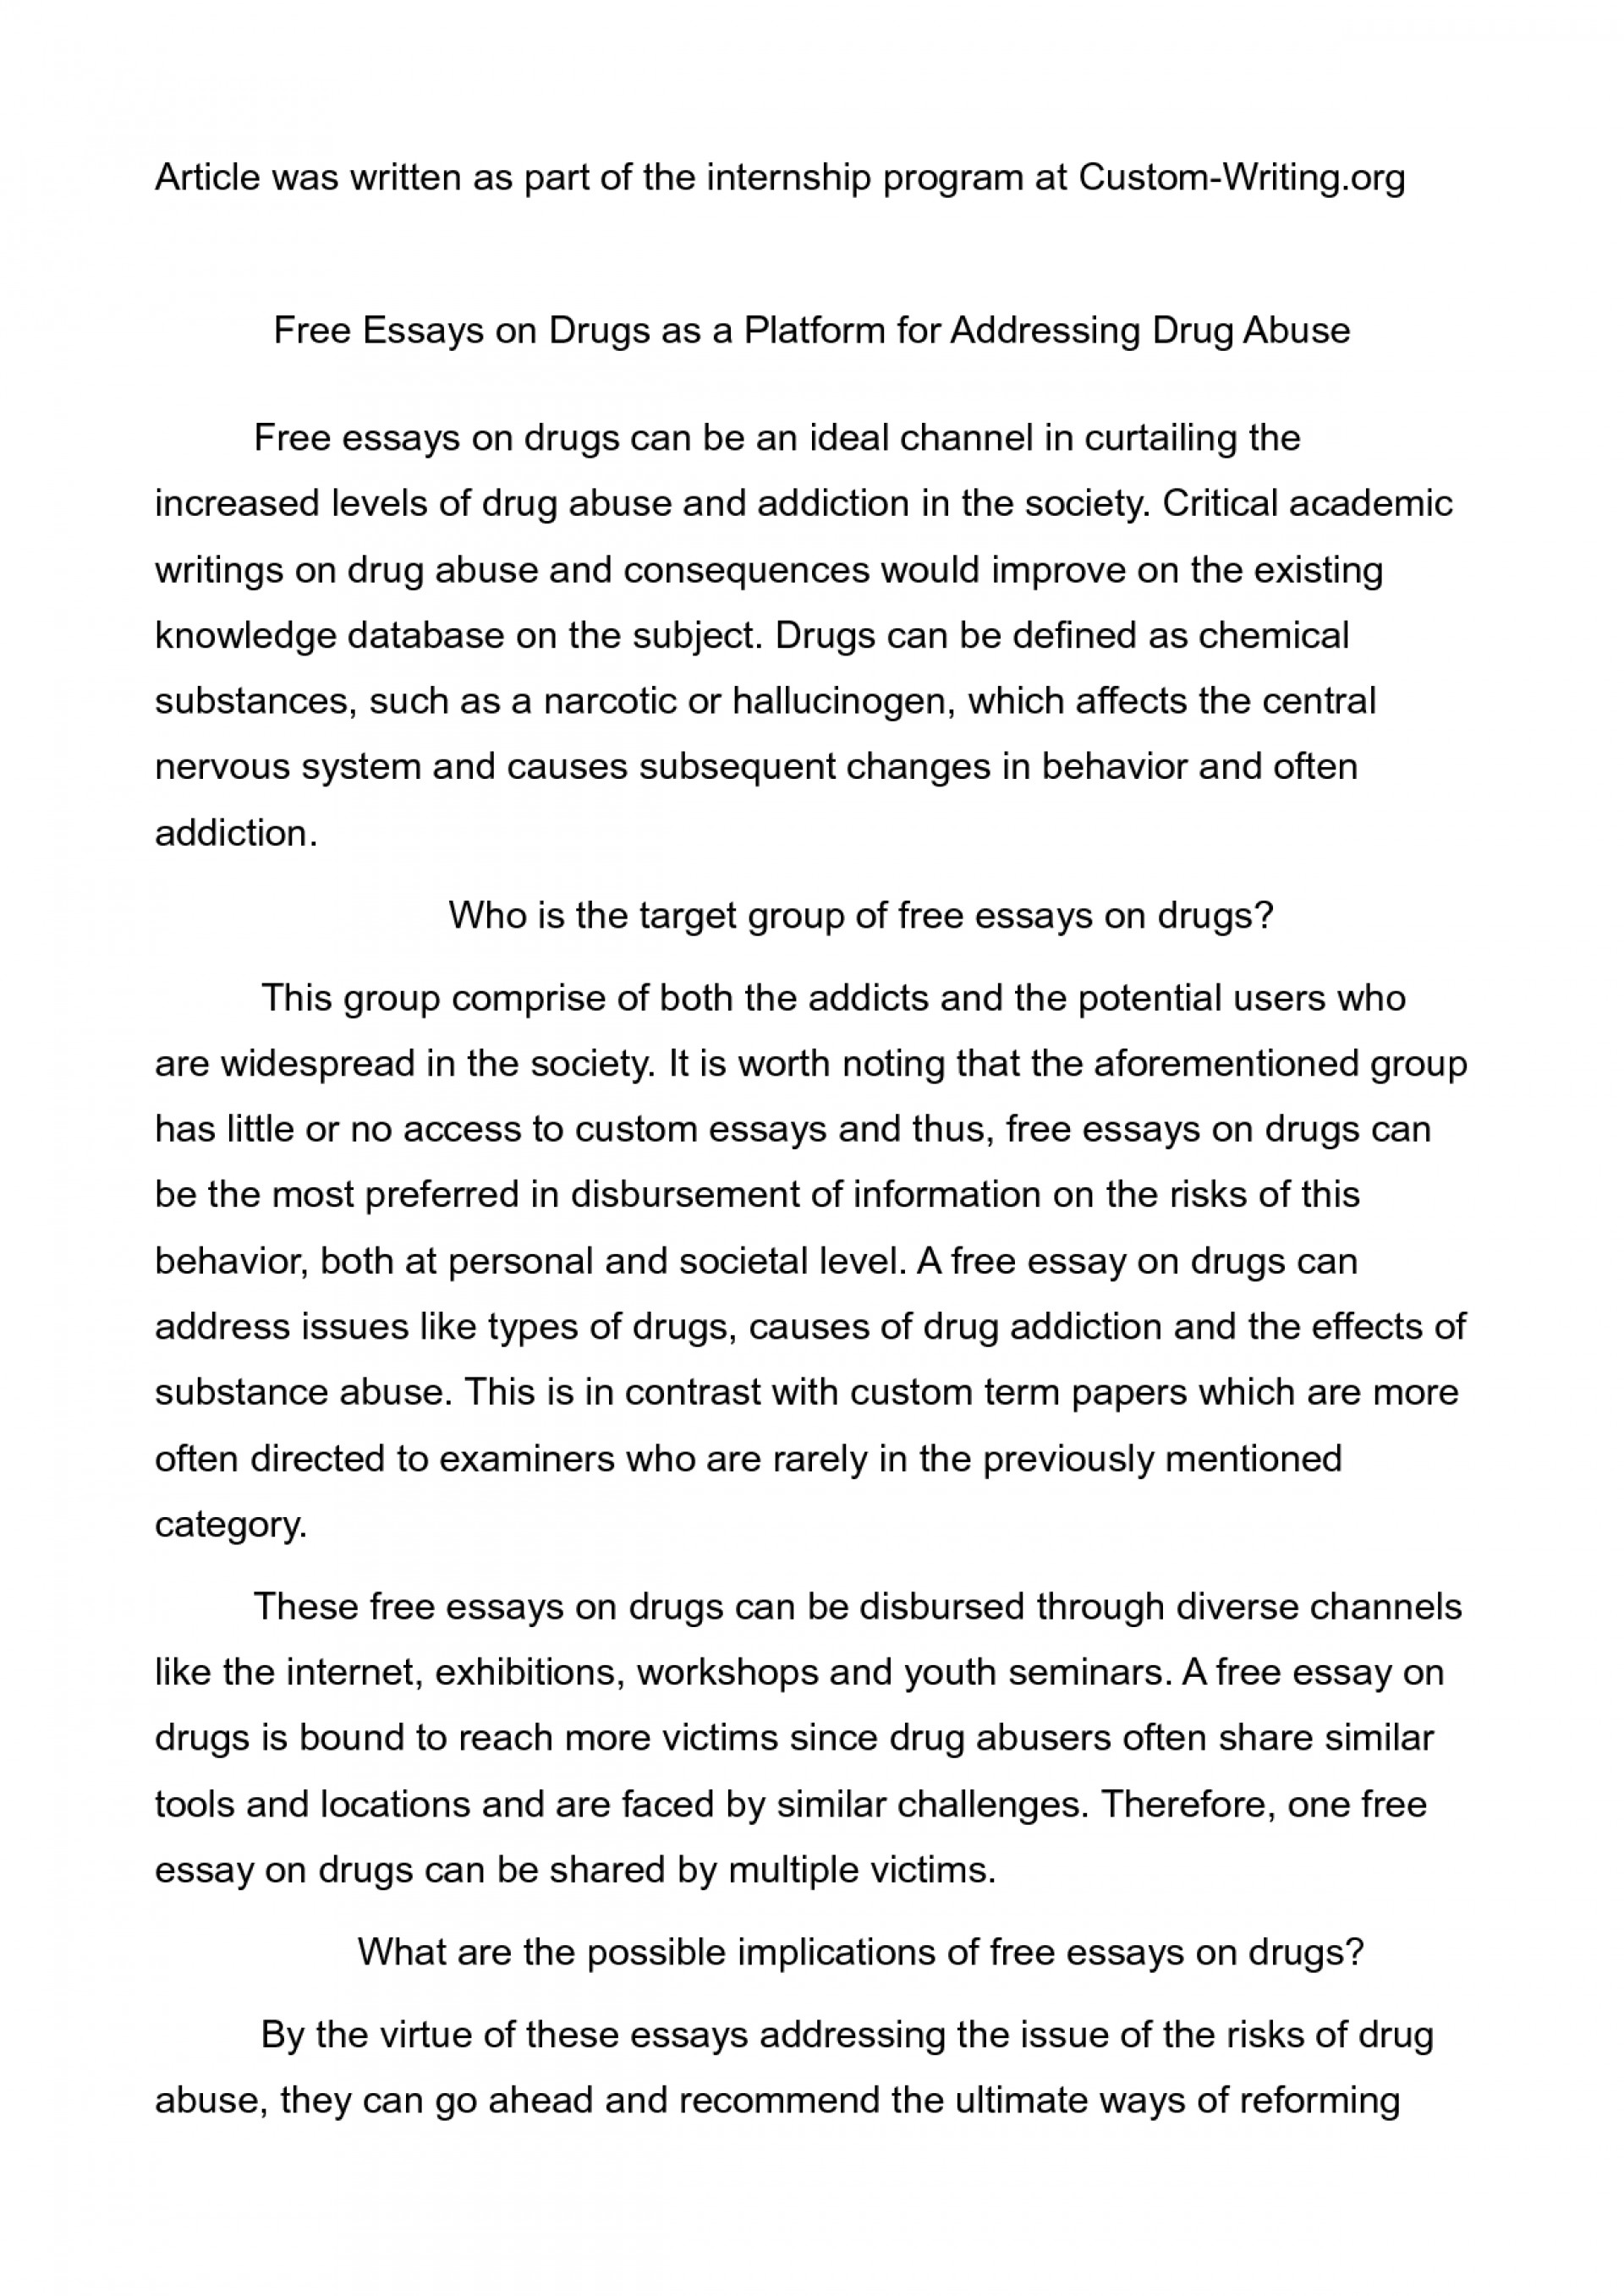 009 Argumentative Essay About Drugs Amazing Outline 6th Grade Persuasive/argumentative Definition Topics Sports 1920